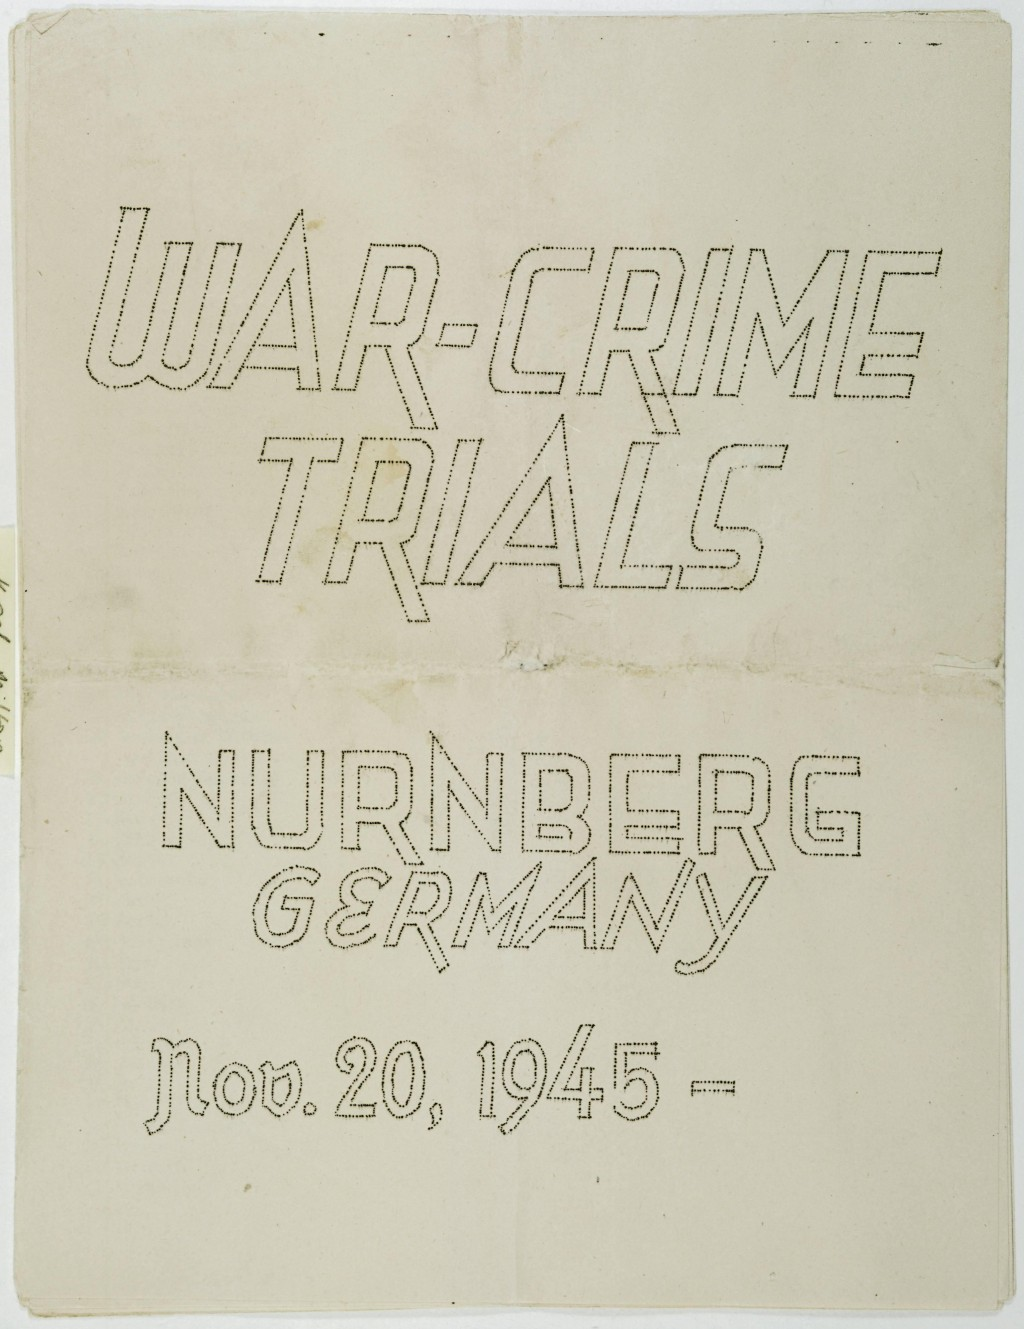 Cover, International Military Tribunal program [LCID: 20053rvo]